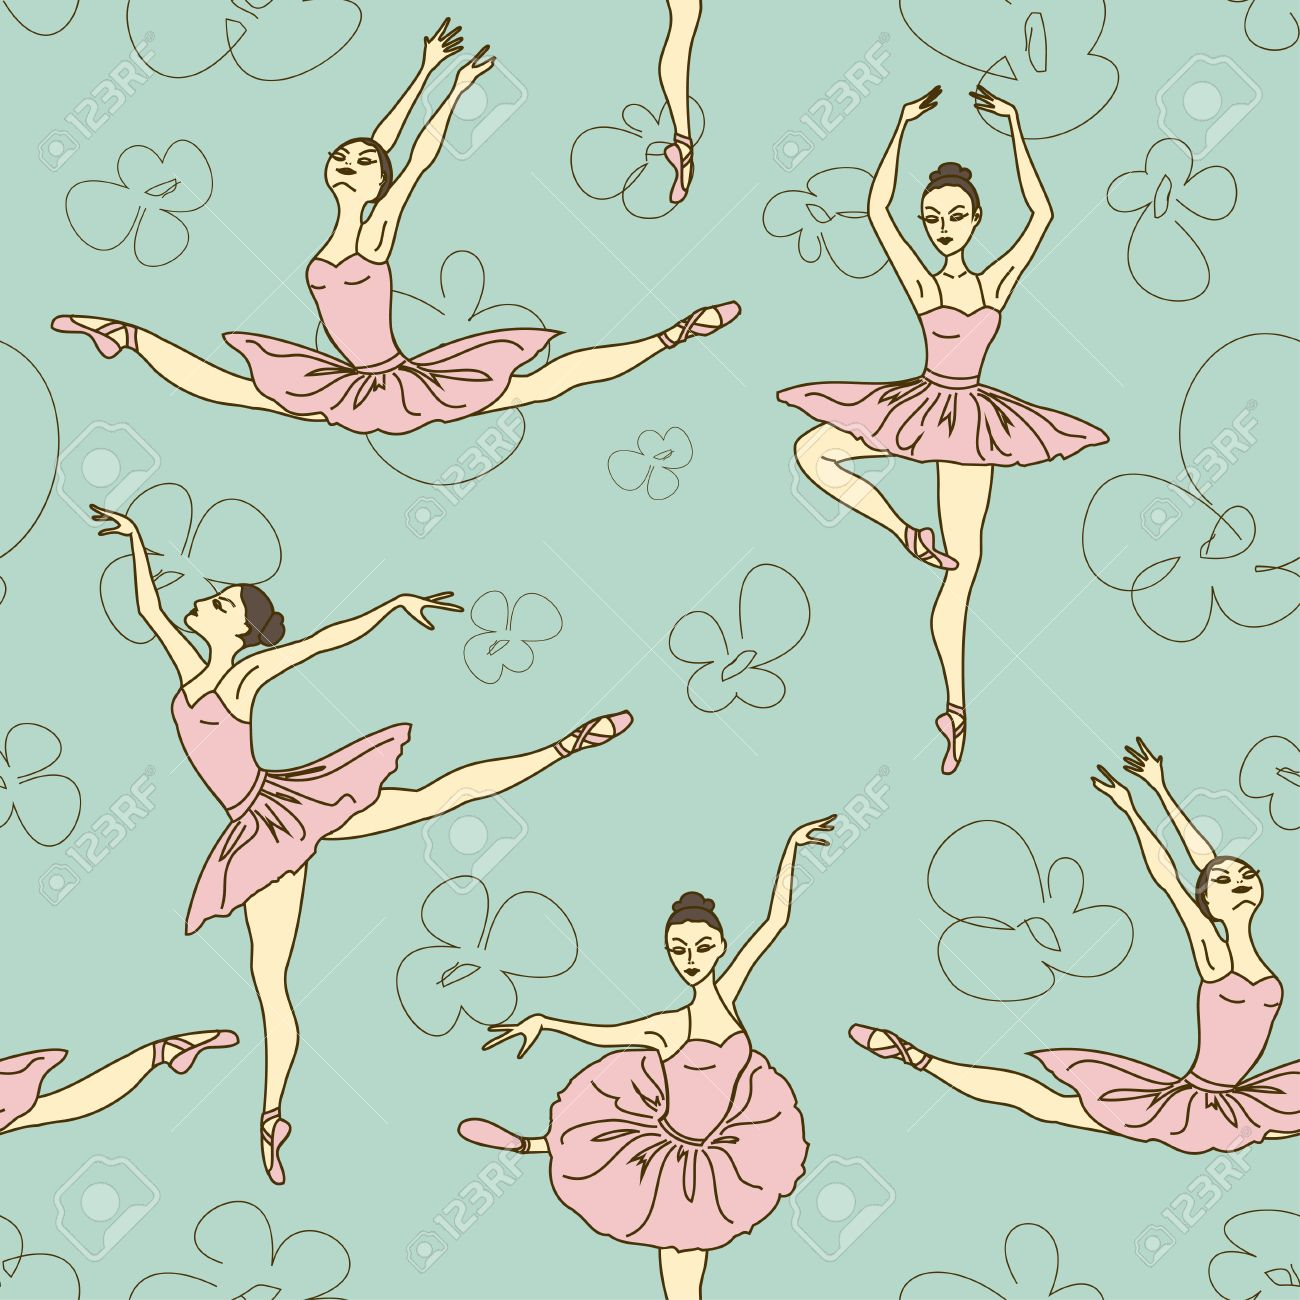 Seamless pattern of ballet dancers royalty free stock photography - Seamless Pattern Of Ballet Dancers In Different Poses Stock Vector 23498864